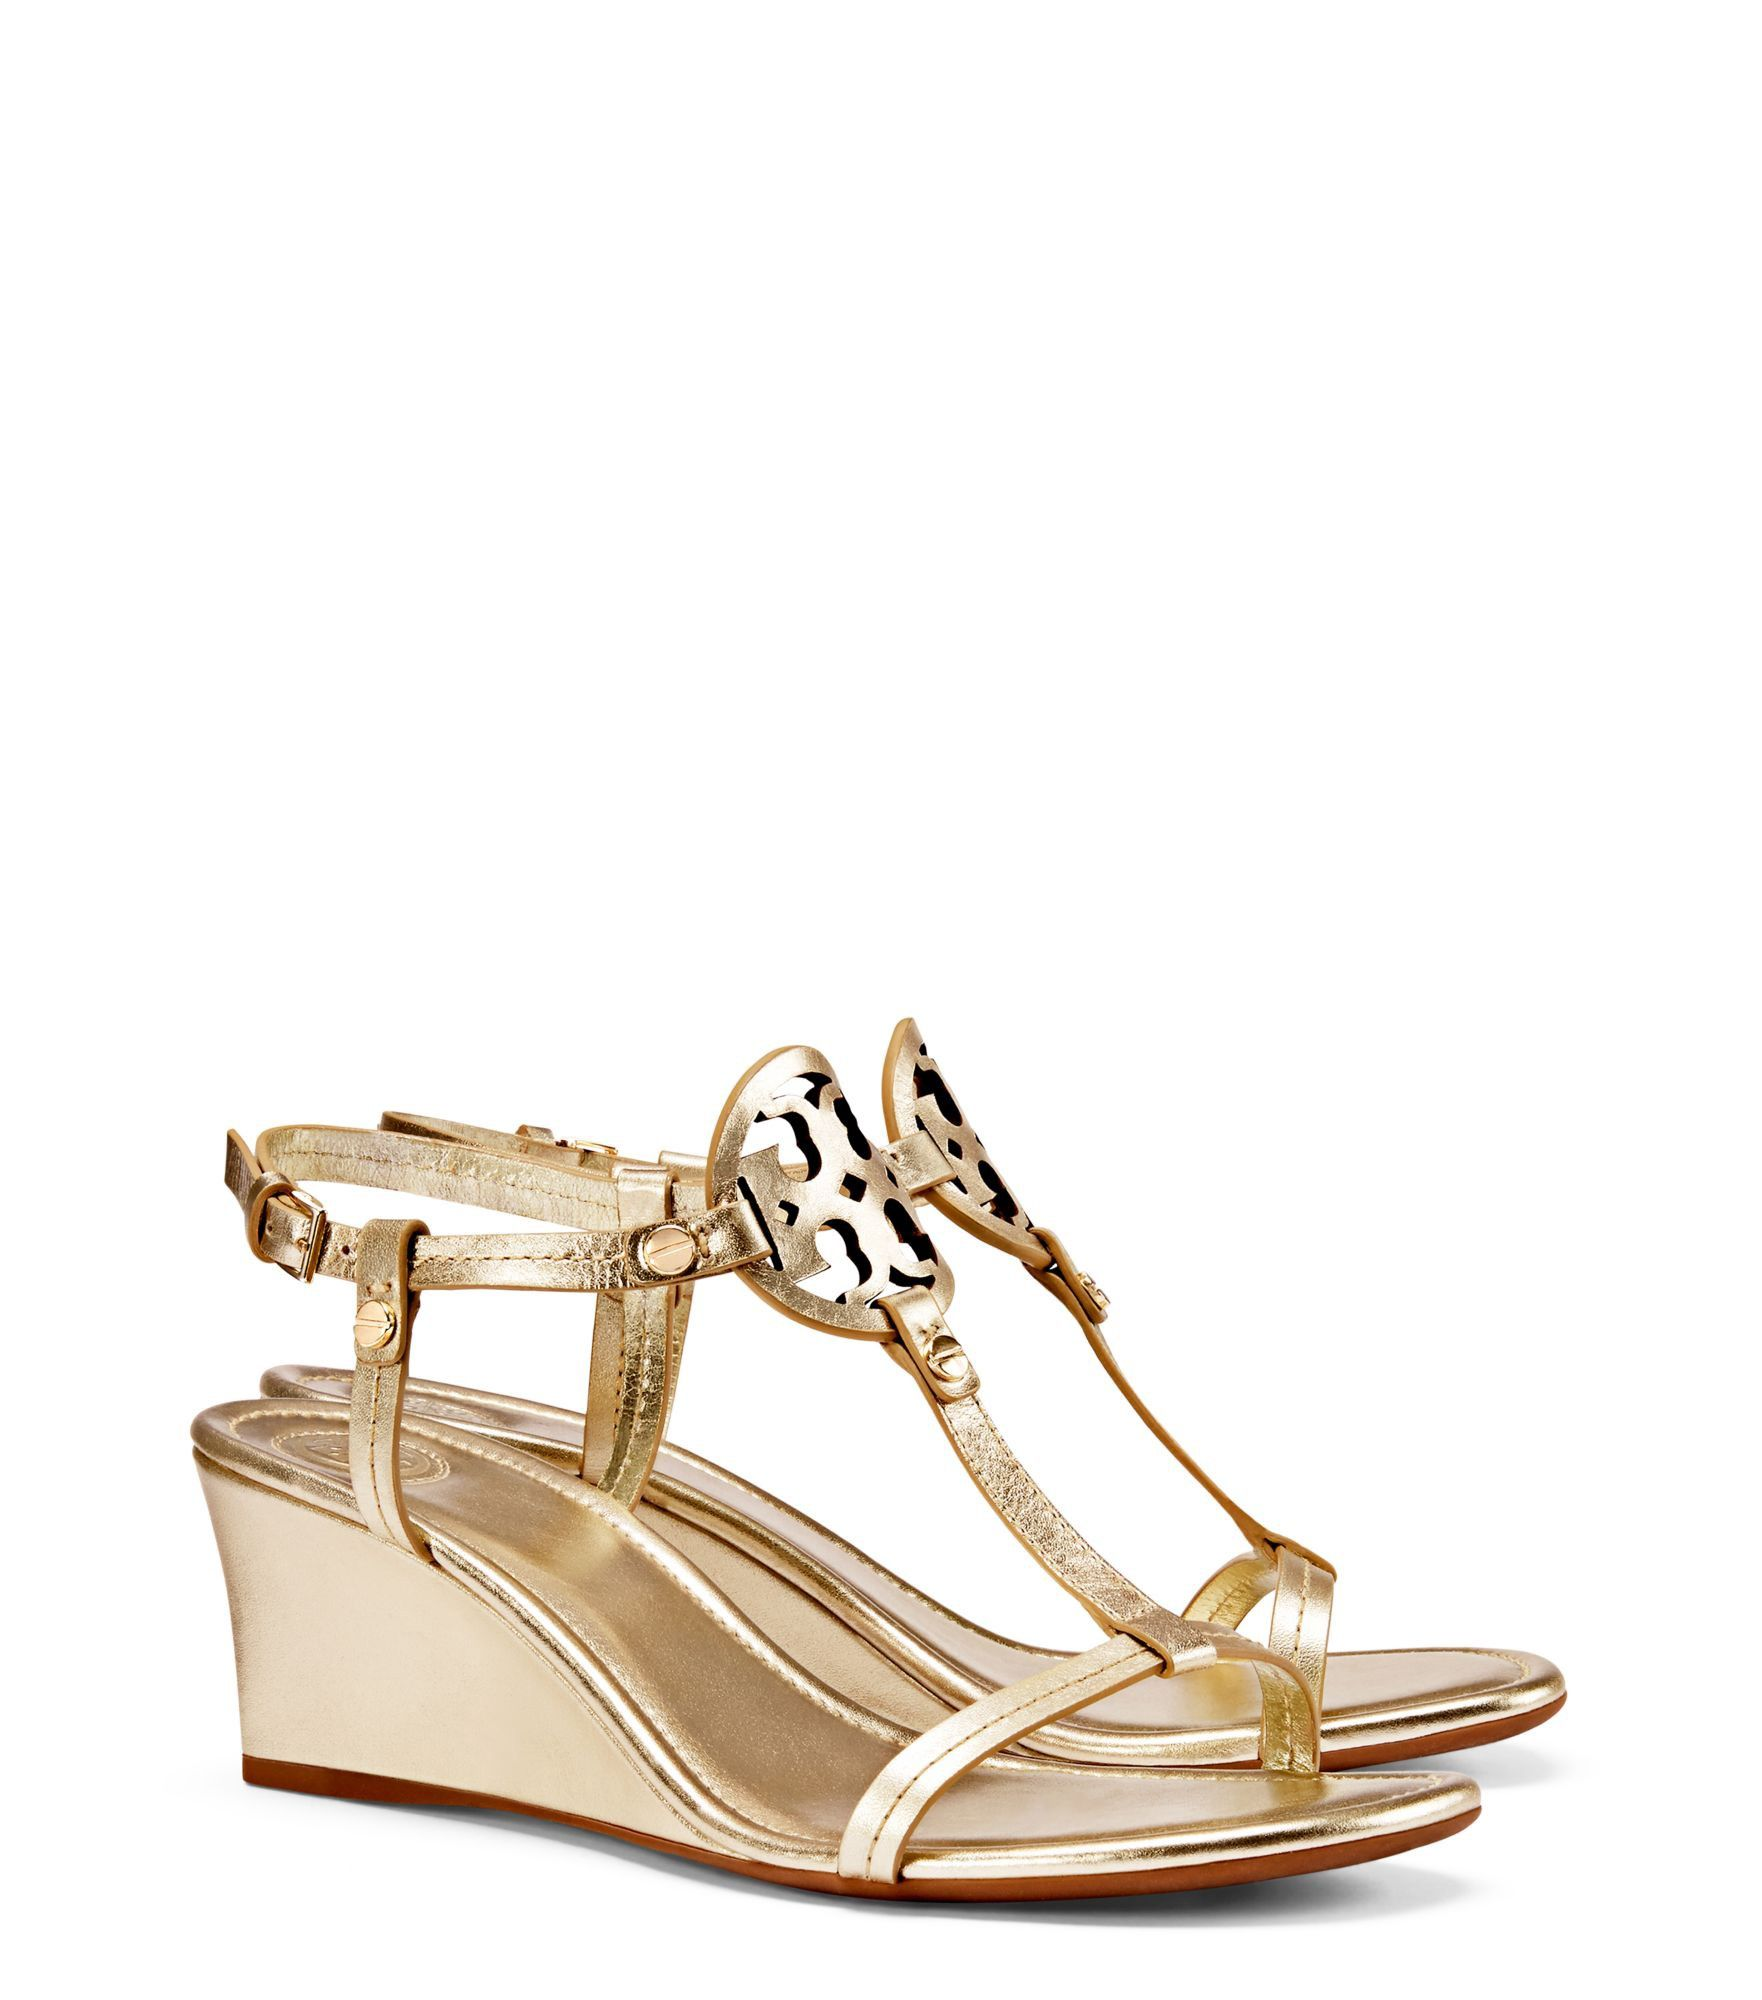 TORY BURCH MILLER WEDGE SANDAL, METALLIC LEATHER. #toryburch #shoes #all